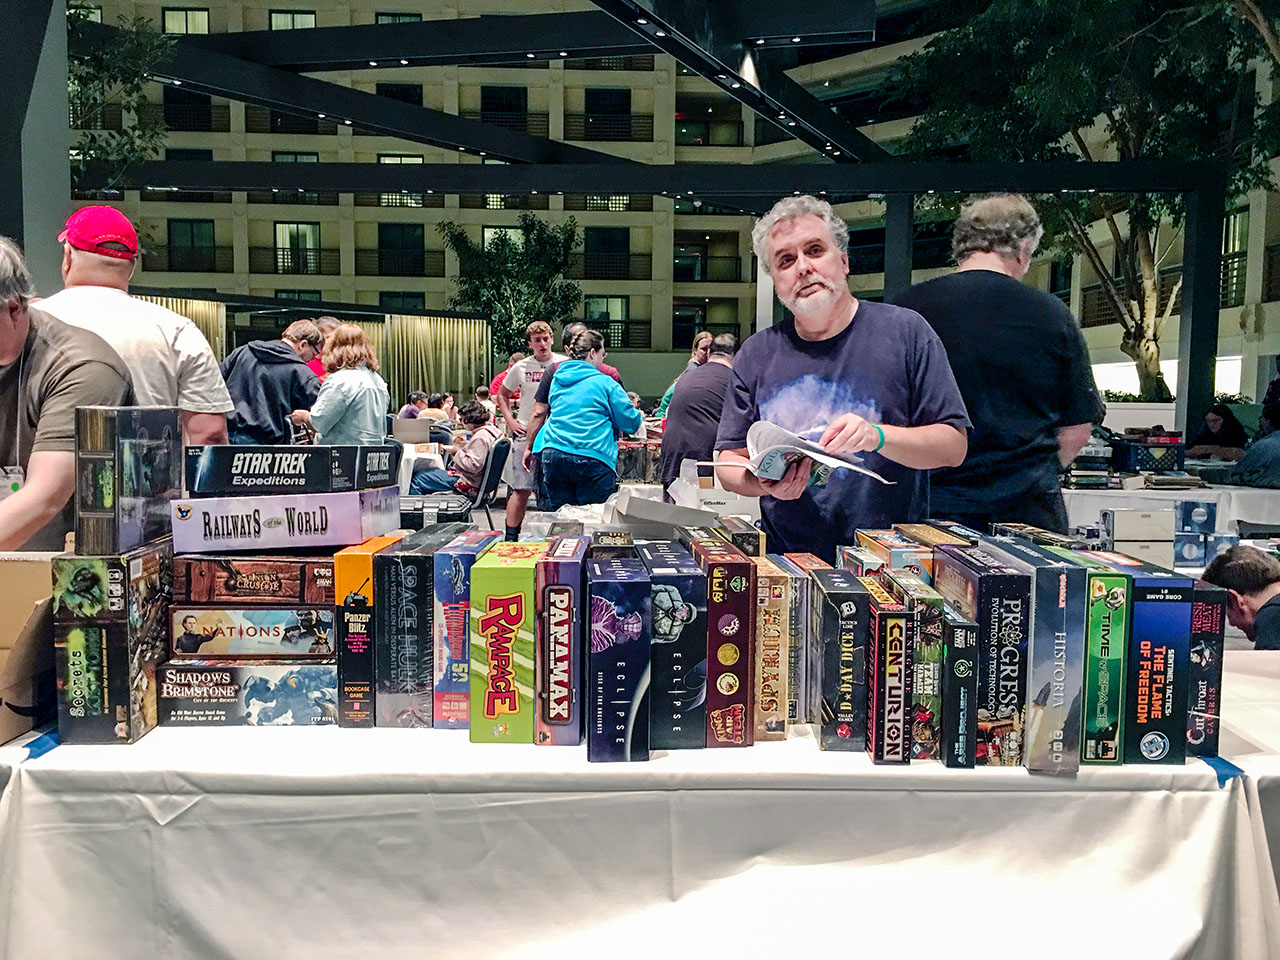 tabletop gaming at kublacon an essay in pictures uncertainty new game demos constitute another rite of passage both game resellers and game companies run demo games many publishers give games and swag to